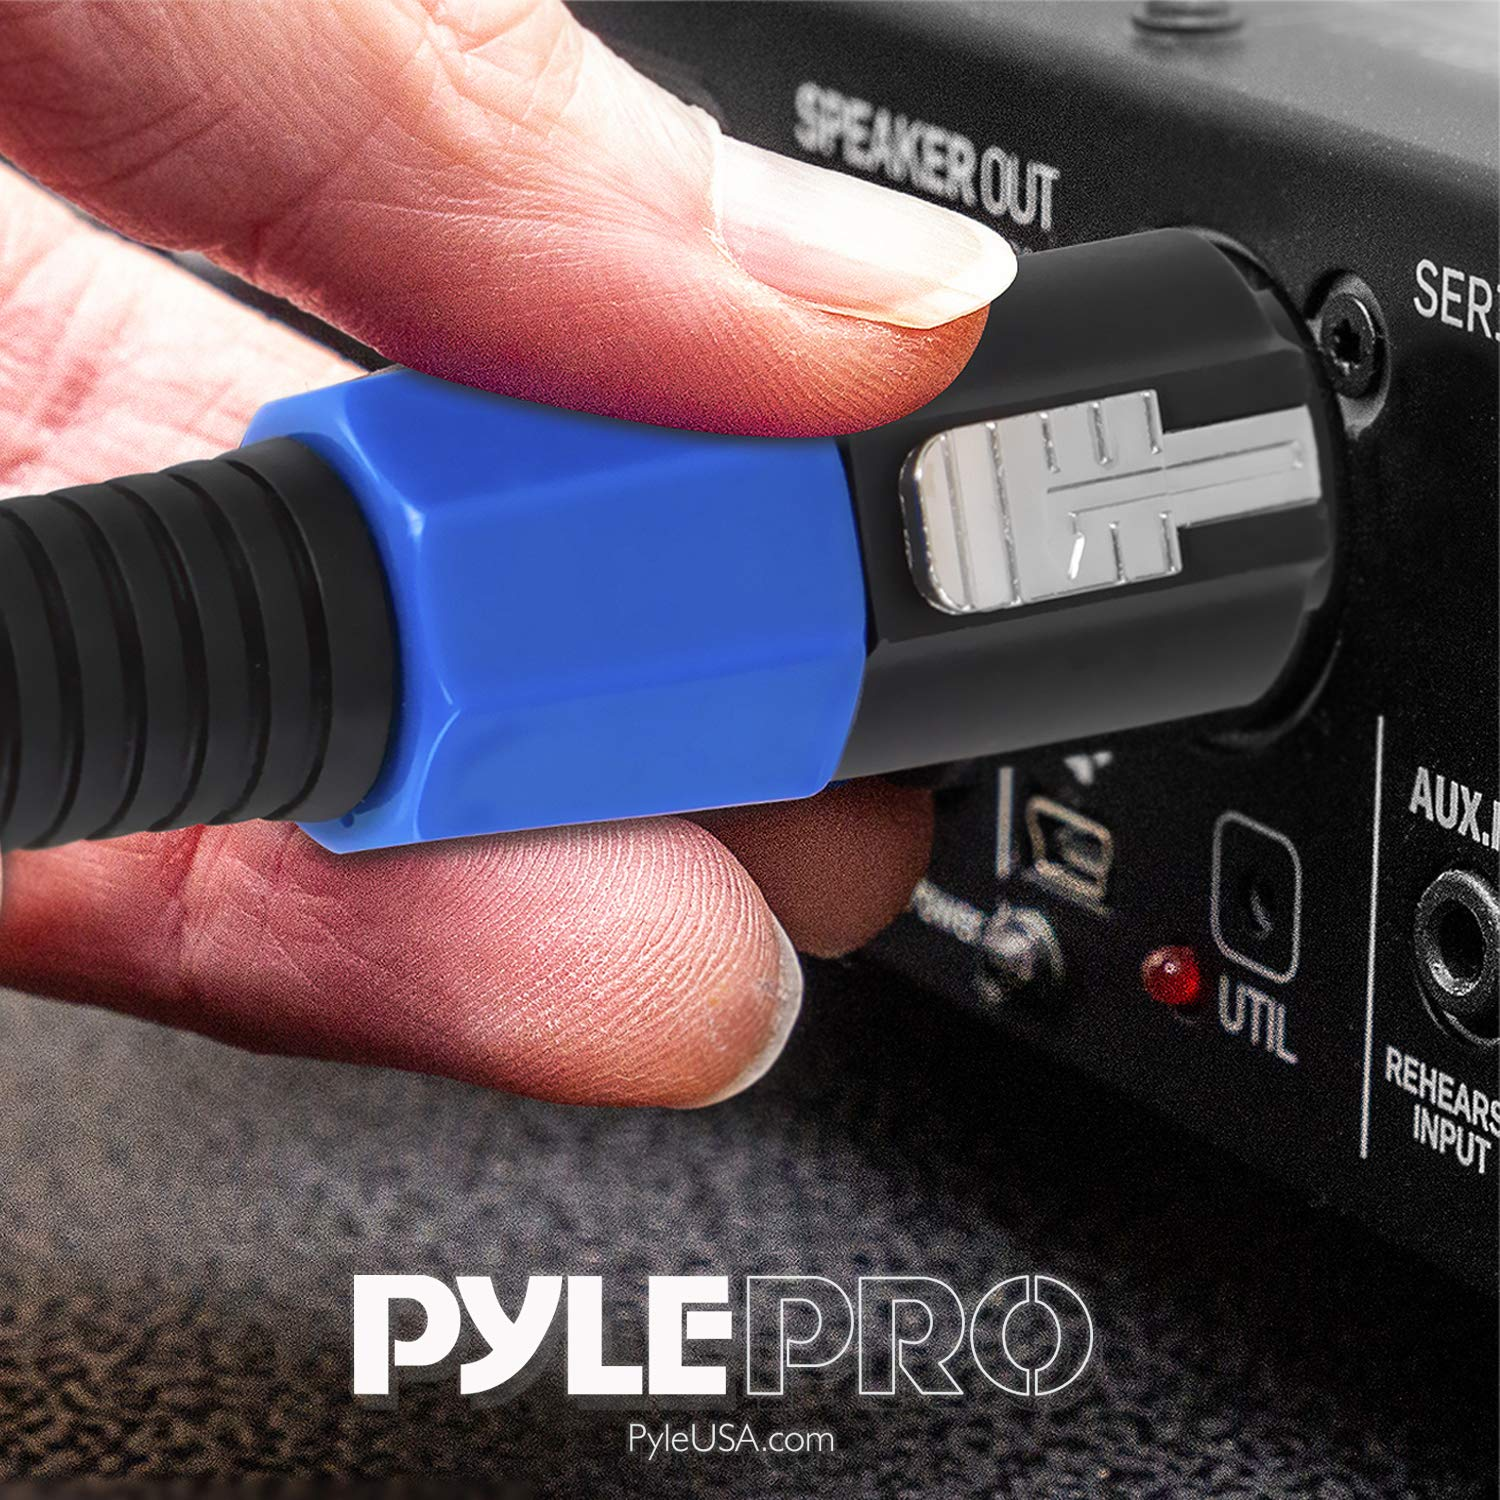 Pyle Pro PPSS50 Speakon to Speakon Audio Cord Delivers Sound 50 ft 12 Gauge Male Speakon Connector to Male Speakon Connection Black Heavy Duty Professional Speaker Cable Wire